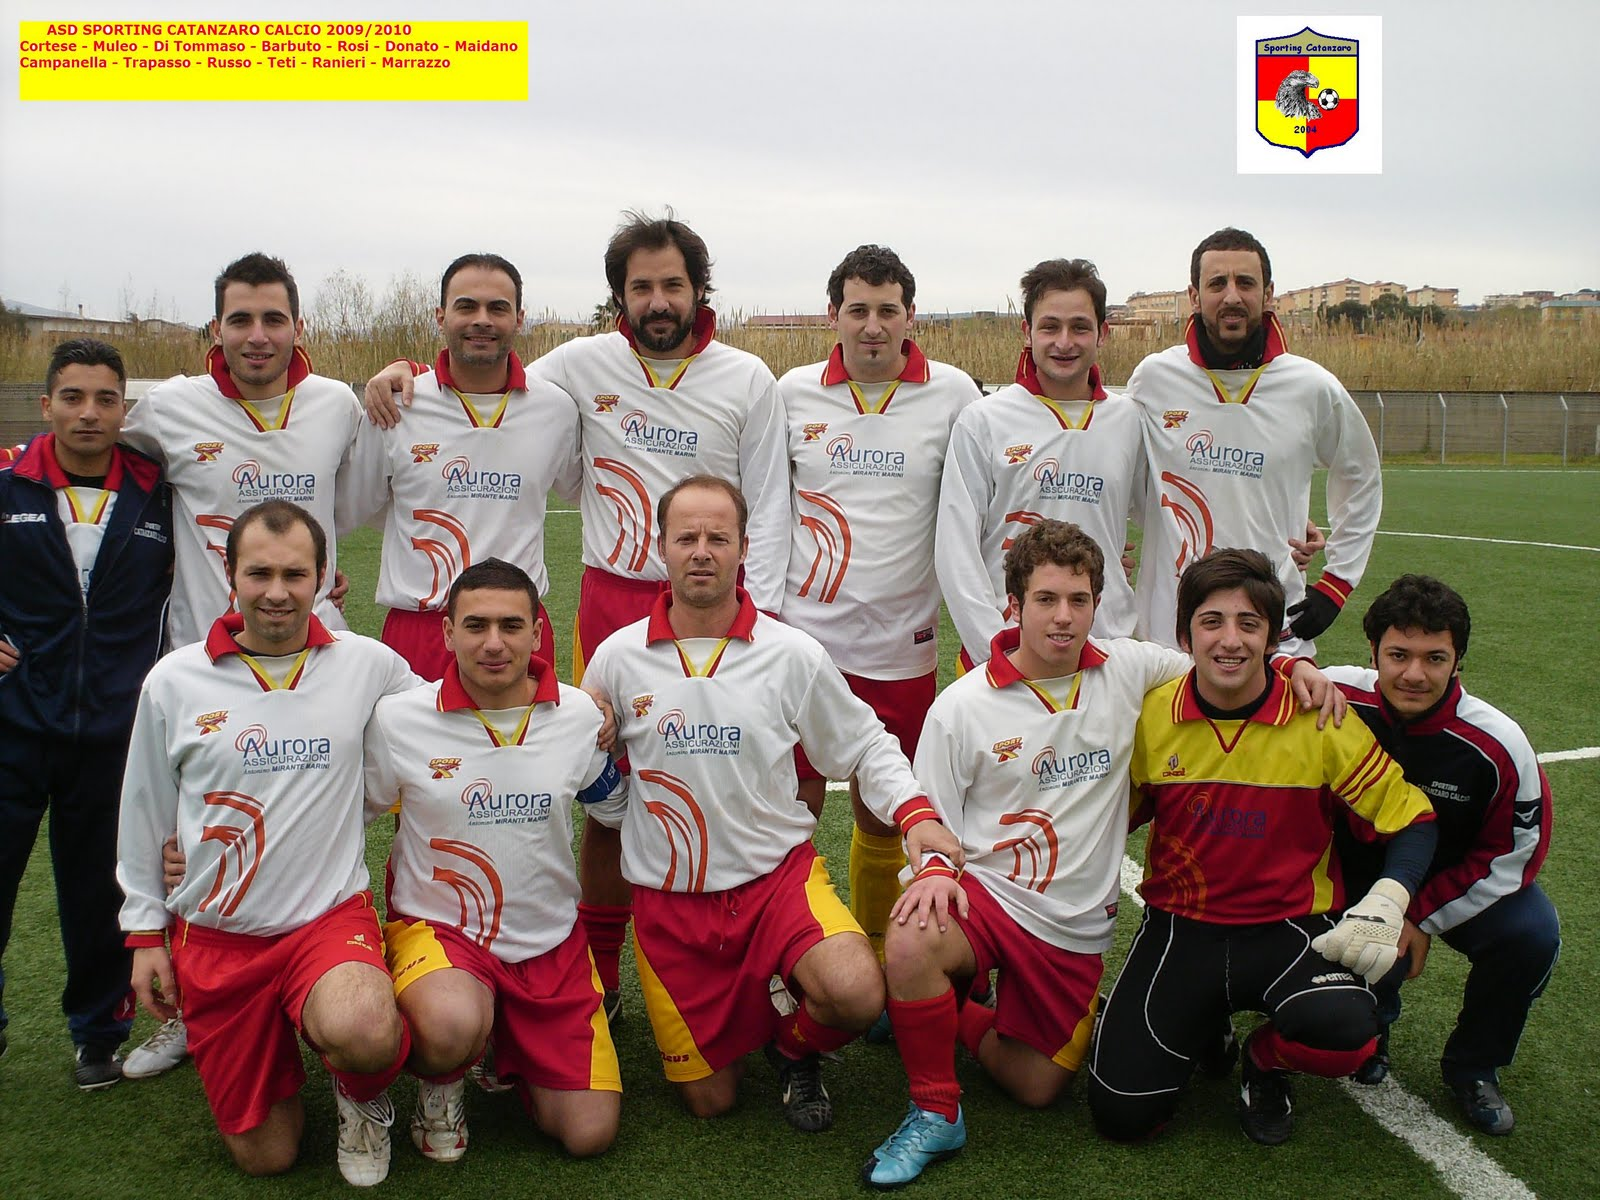 catanzaro calcio - photo #10